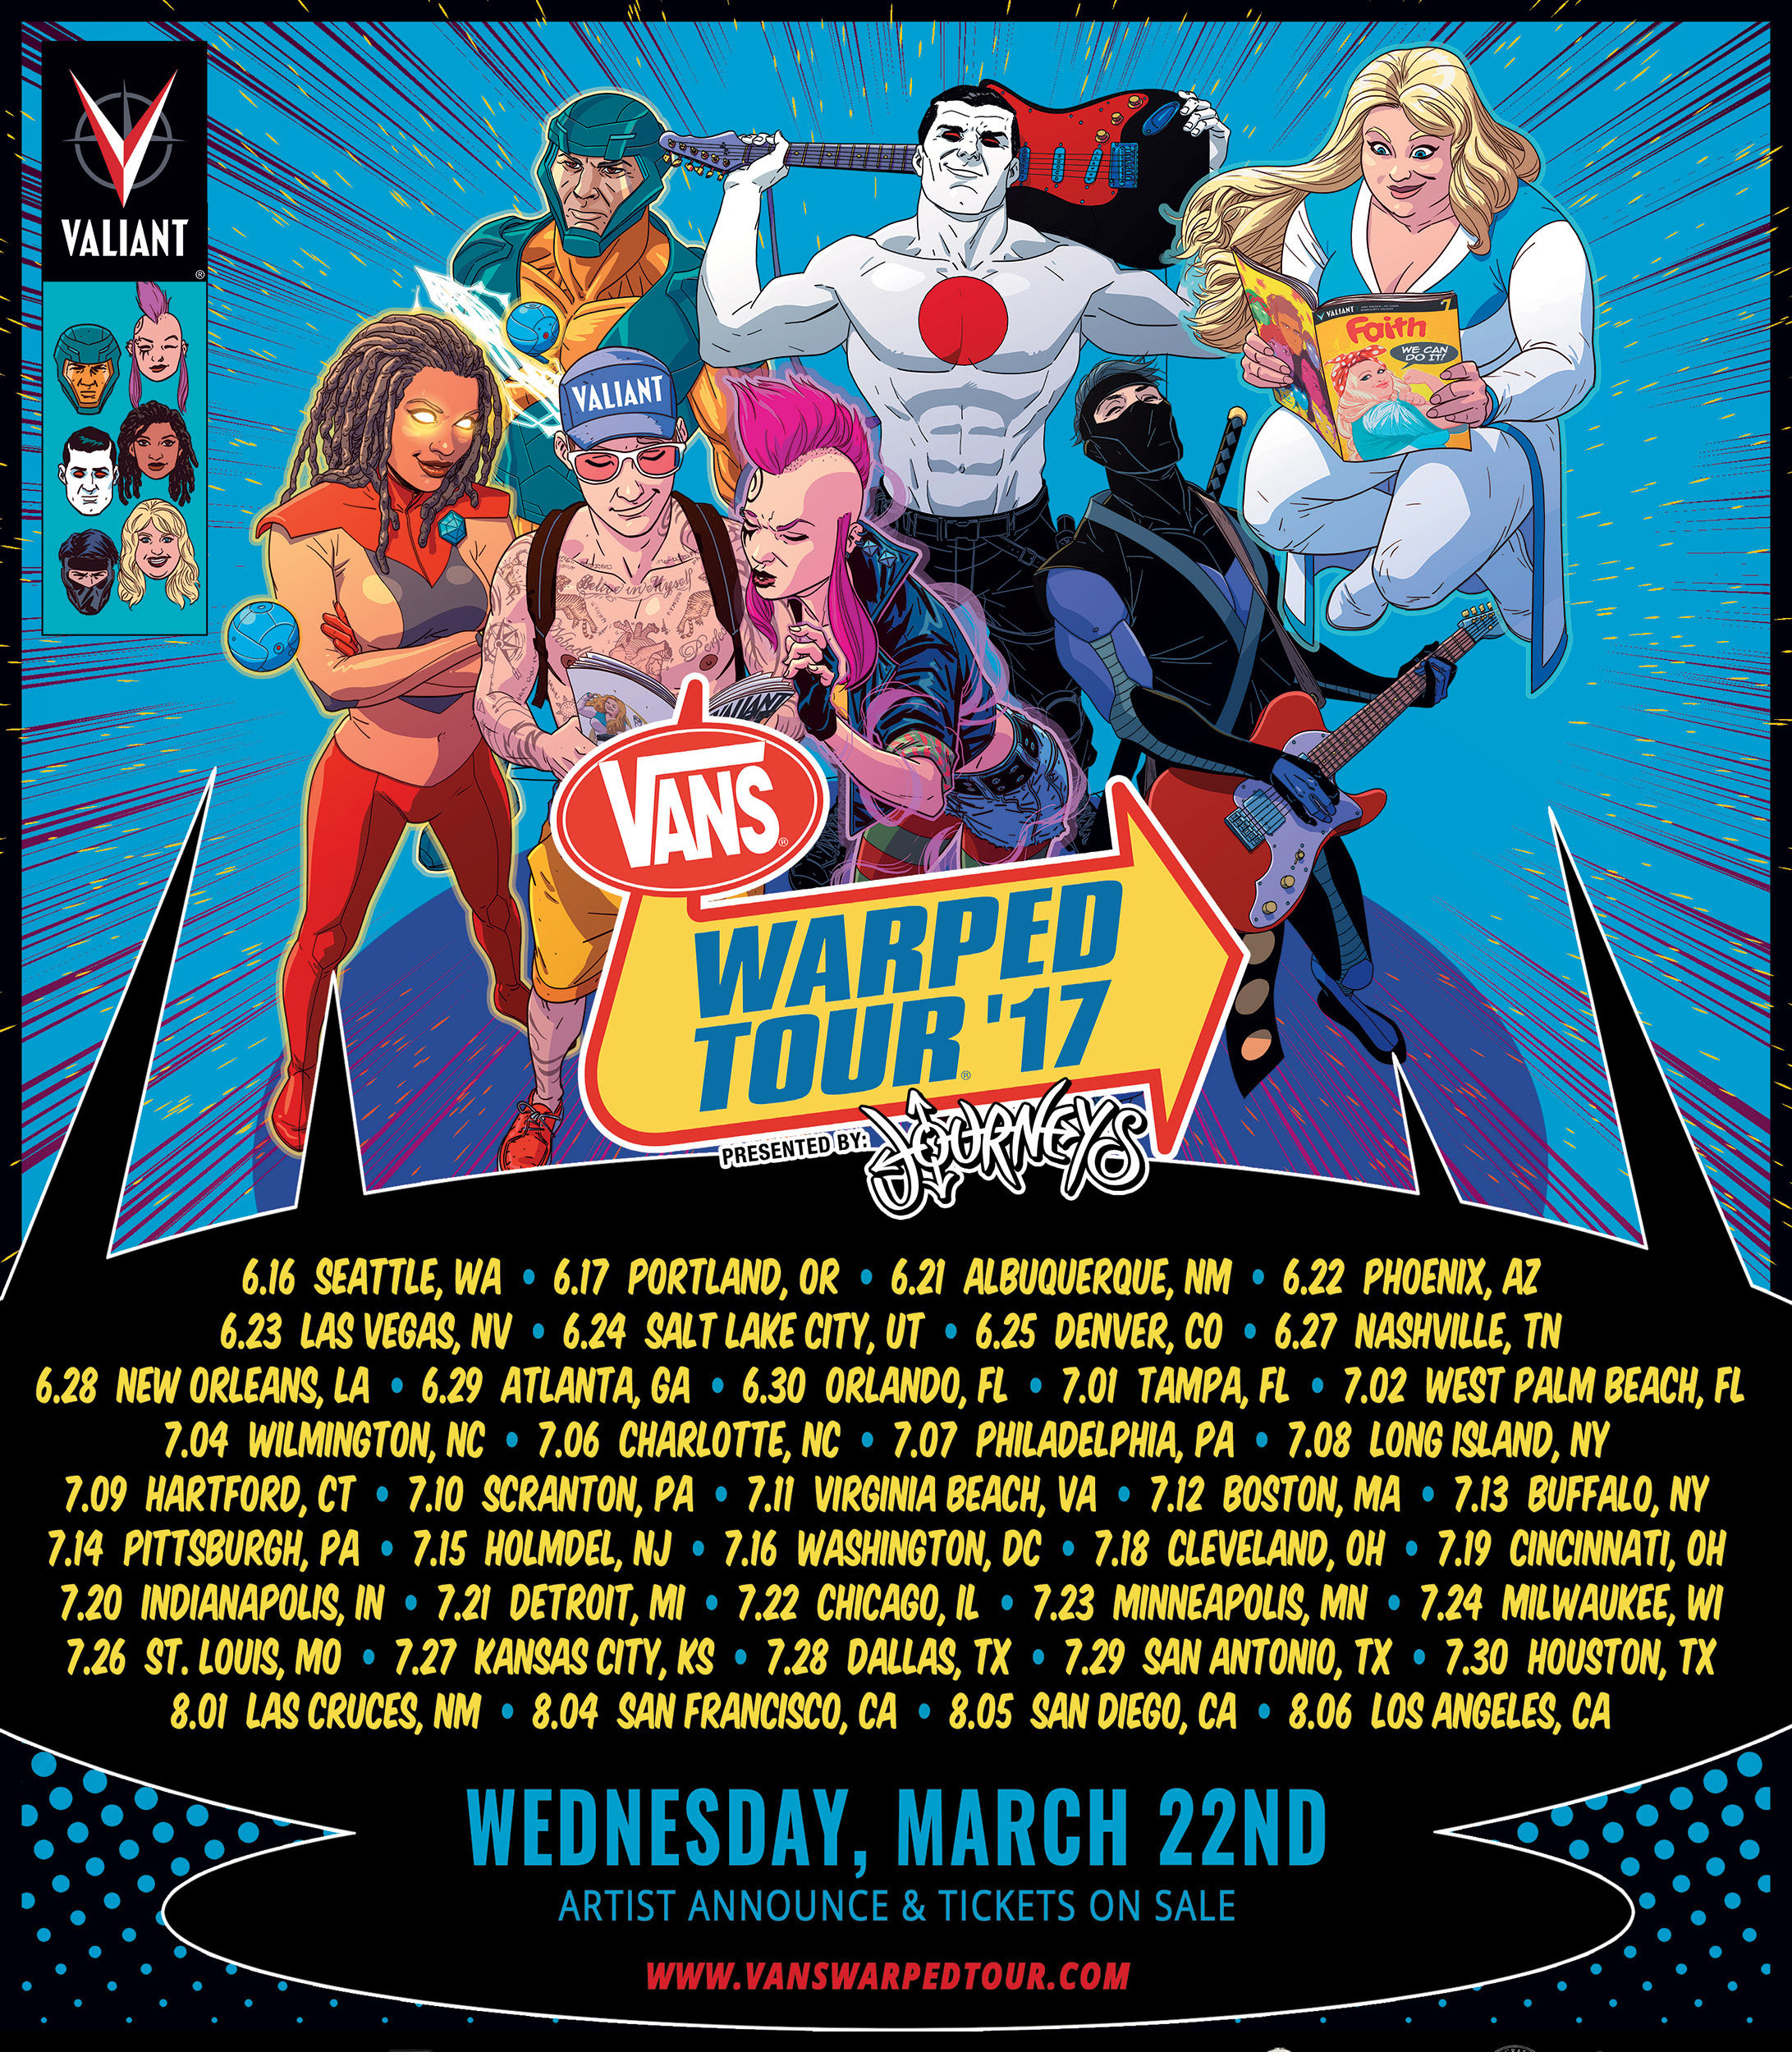 The Vans Warped Tour Presented by Journeys and Valiant Entertainment Team Up for 2017 Artwork and Branding